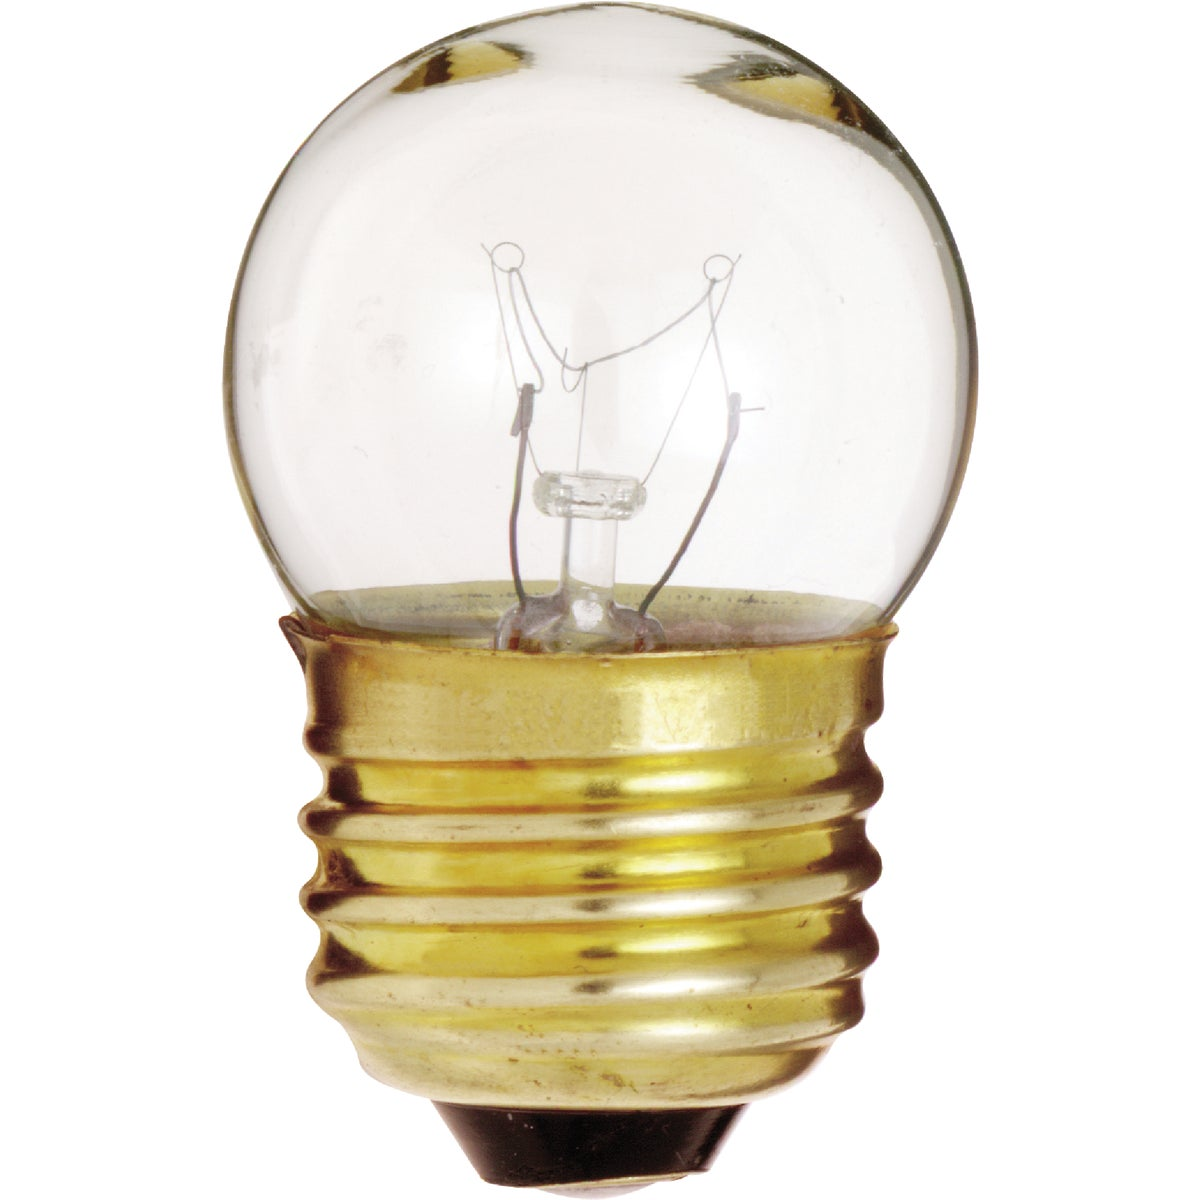 7-1/2W CLR UTILITY BULB - 46844 by G E Lighting